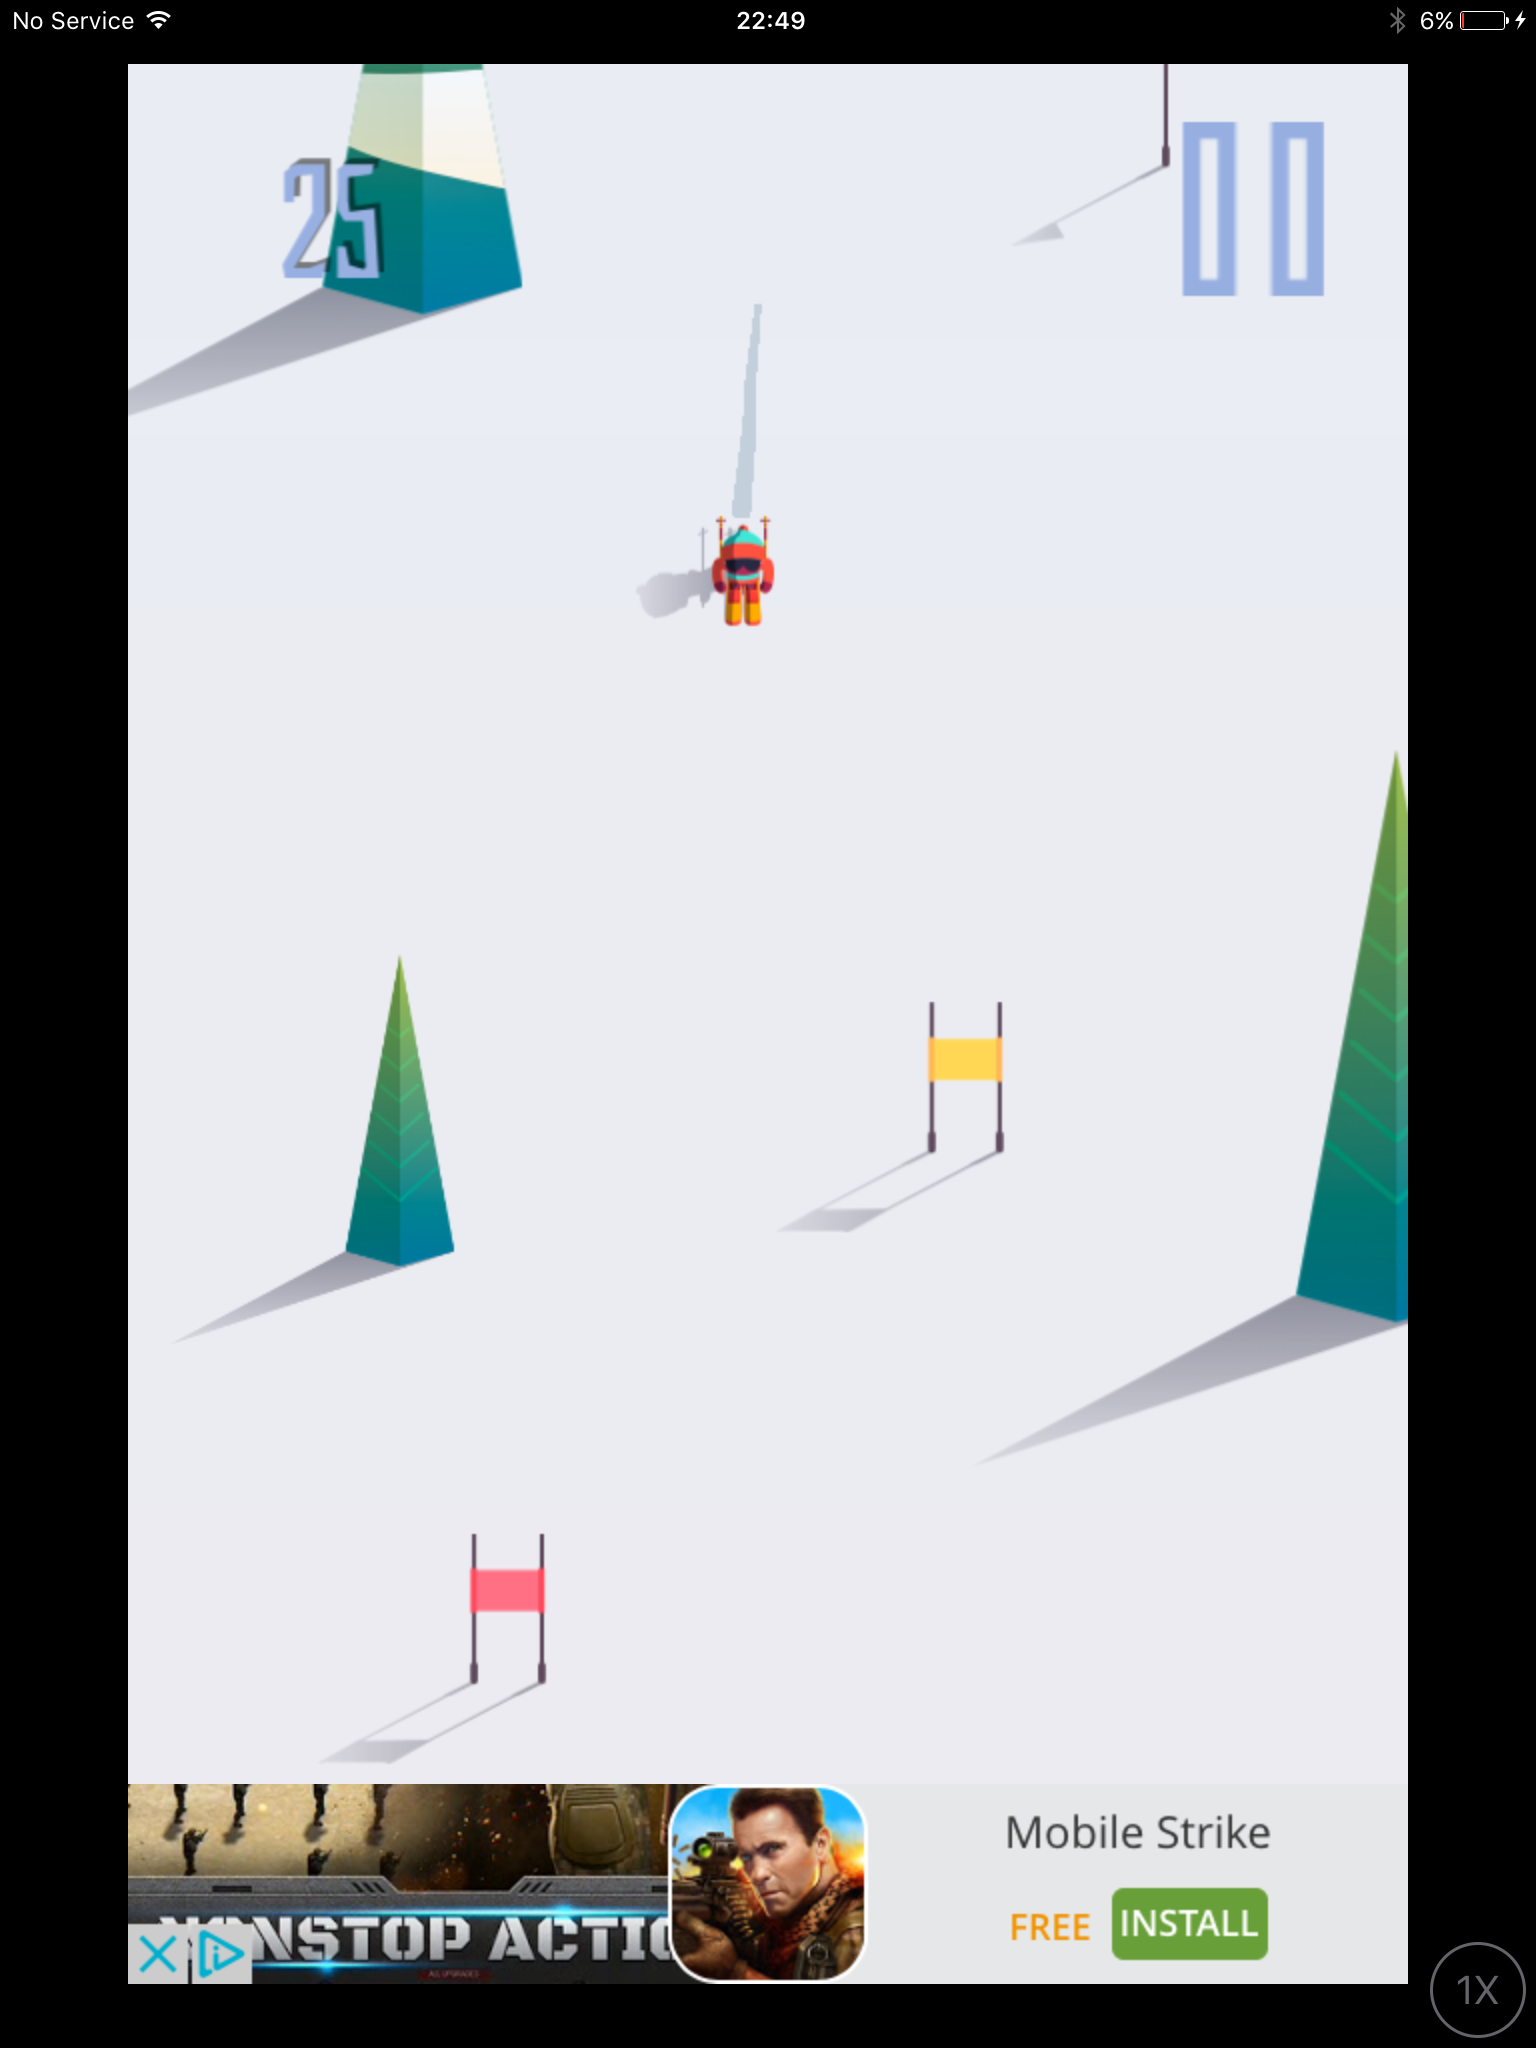 Arctic Smash review - Two games, not worth the price of one